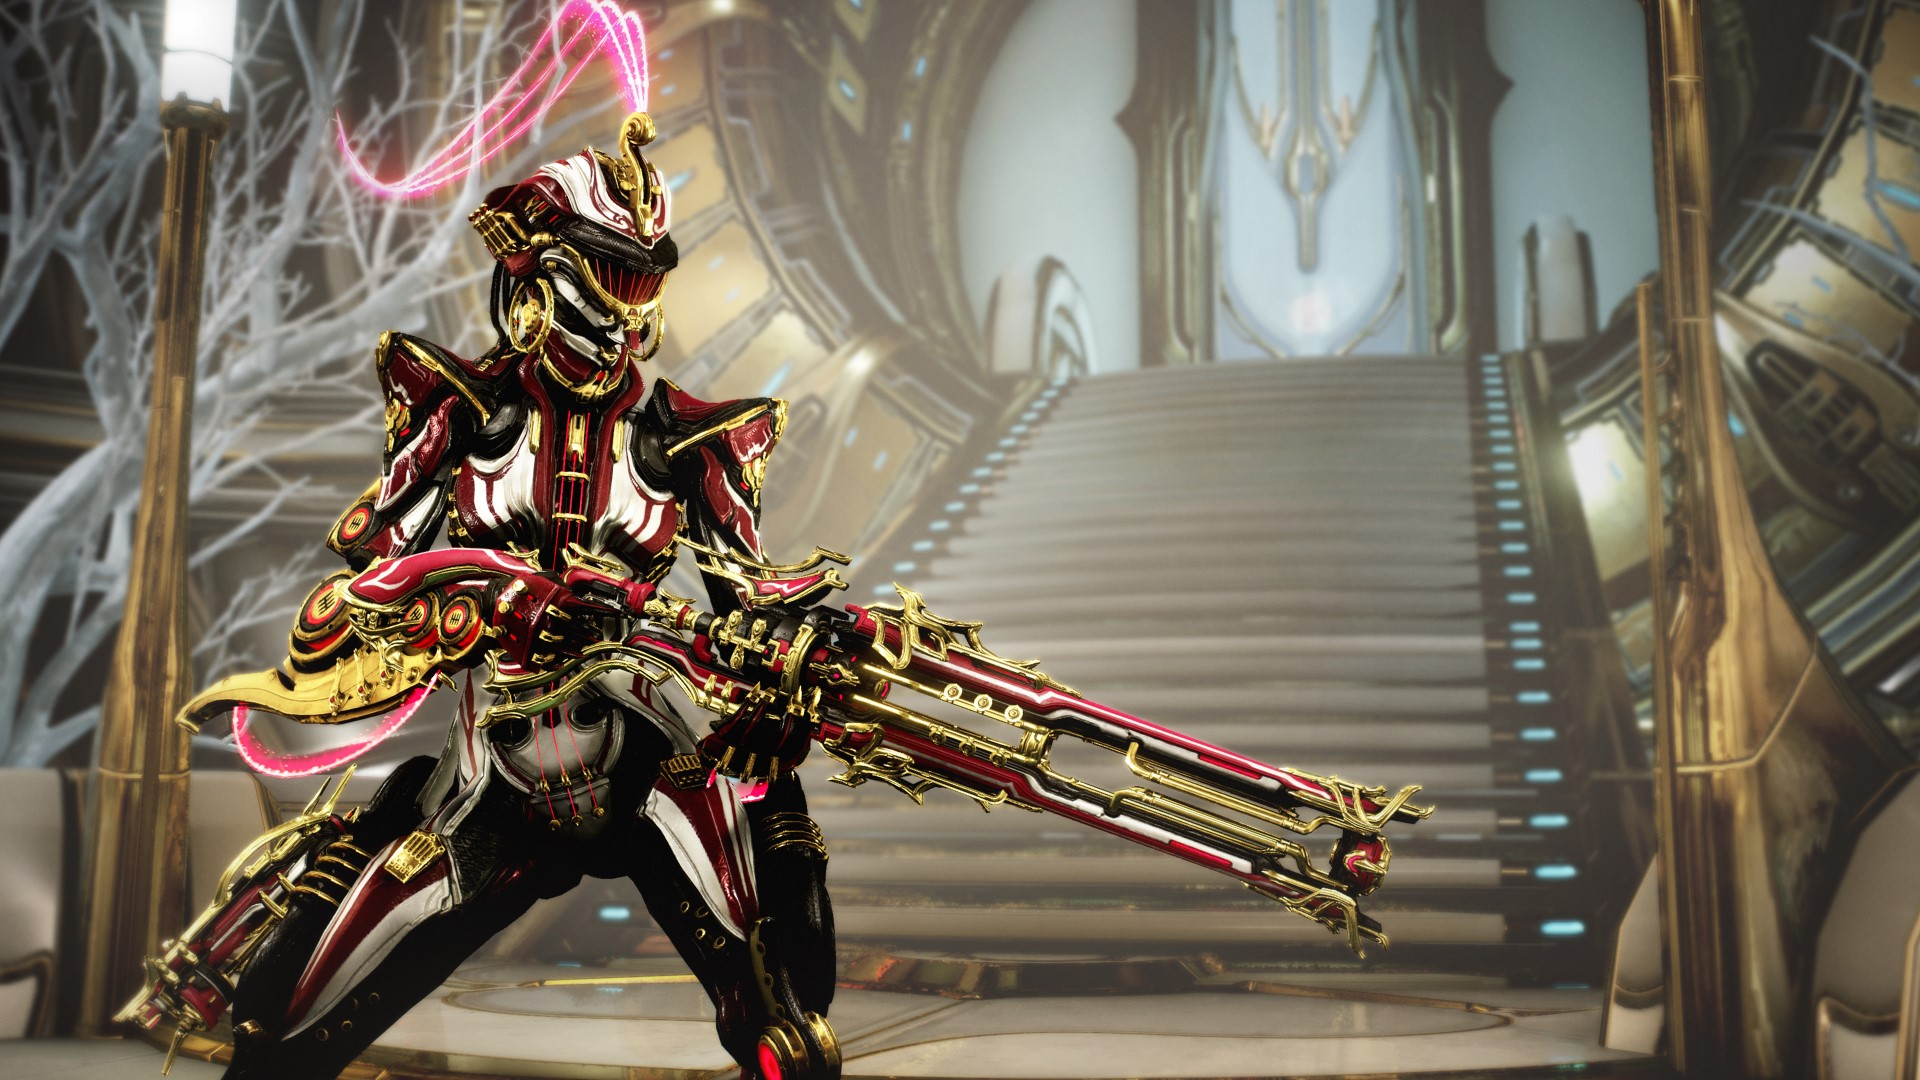 Warframe's Octavia has joined Prime Access